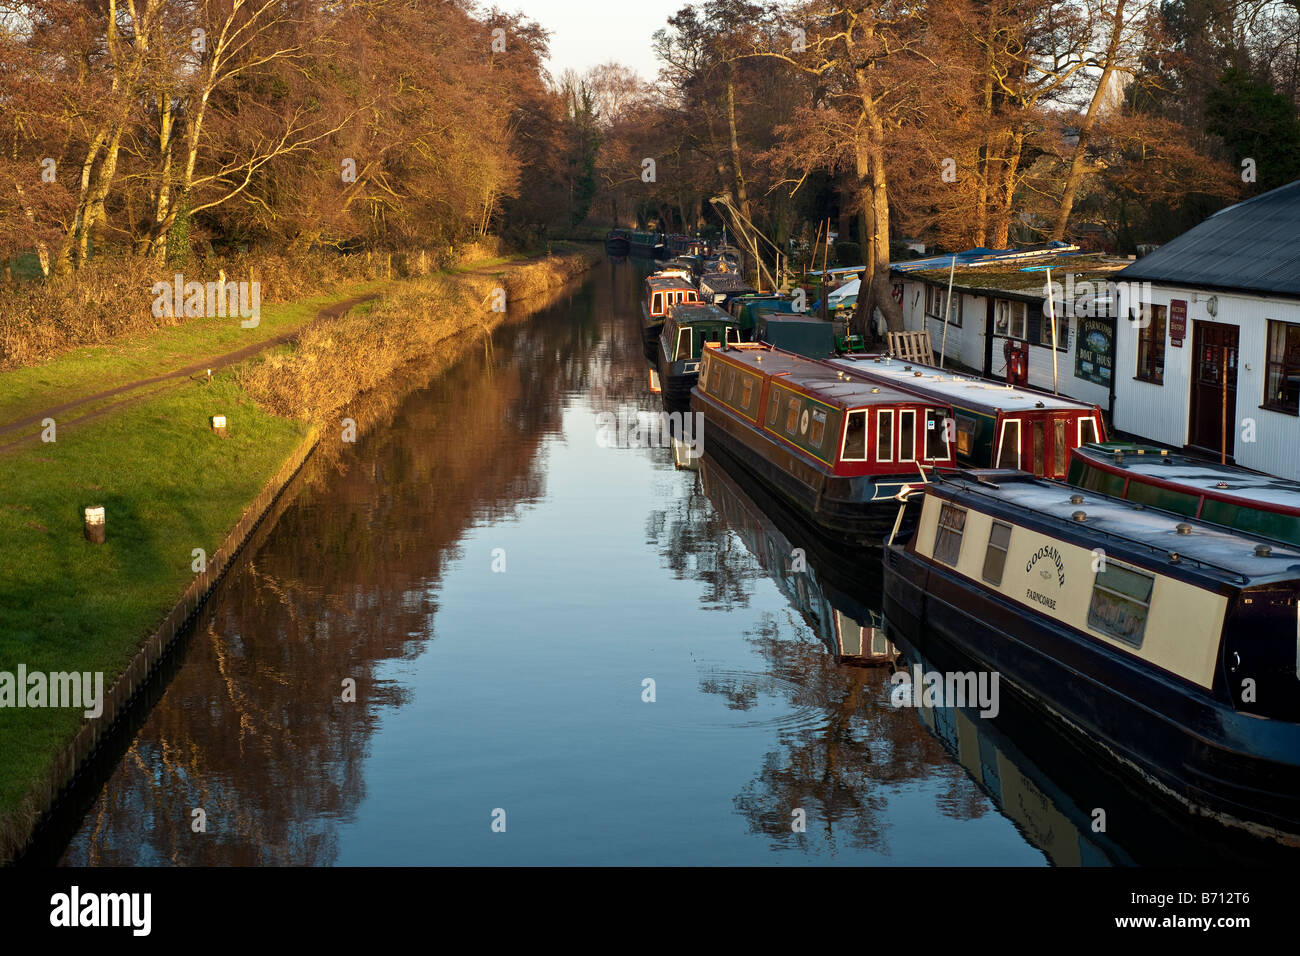 House boats in Godalming. - Stock Image